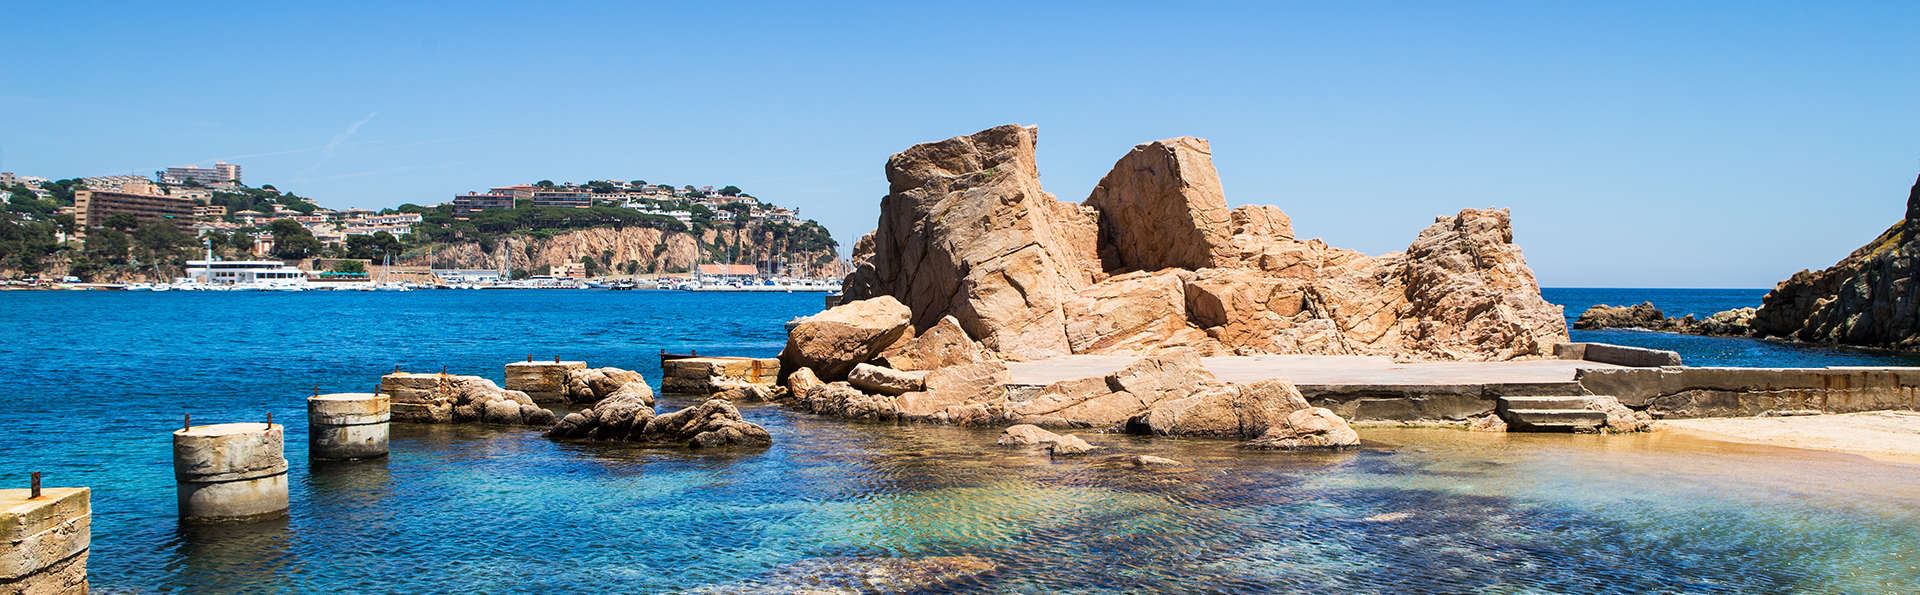 RVHotels Golf Costa Brava - Edit_Destination.jpg